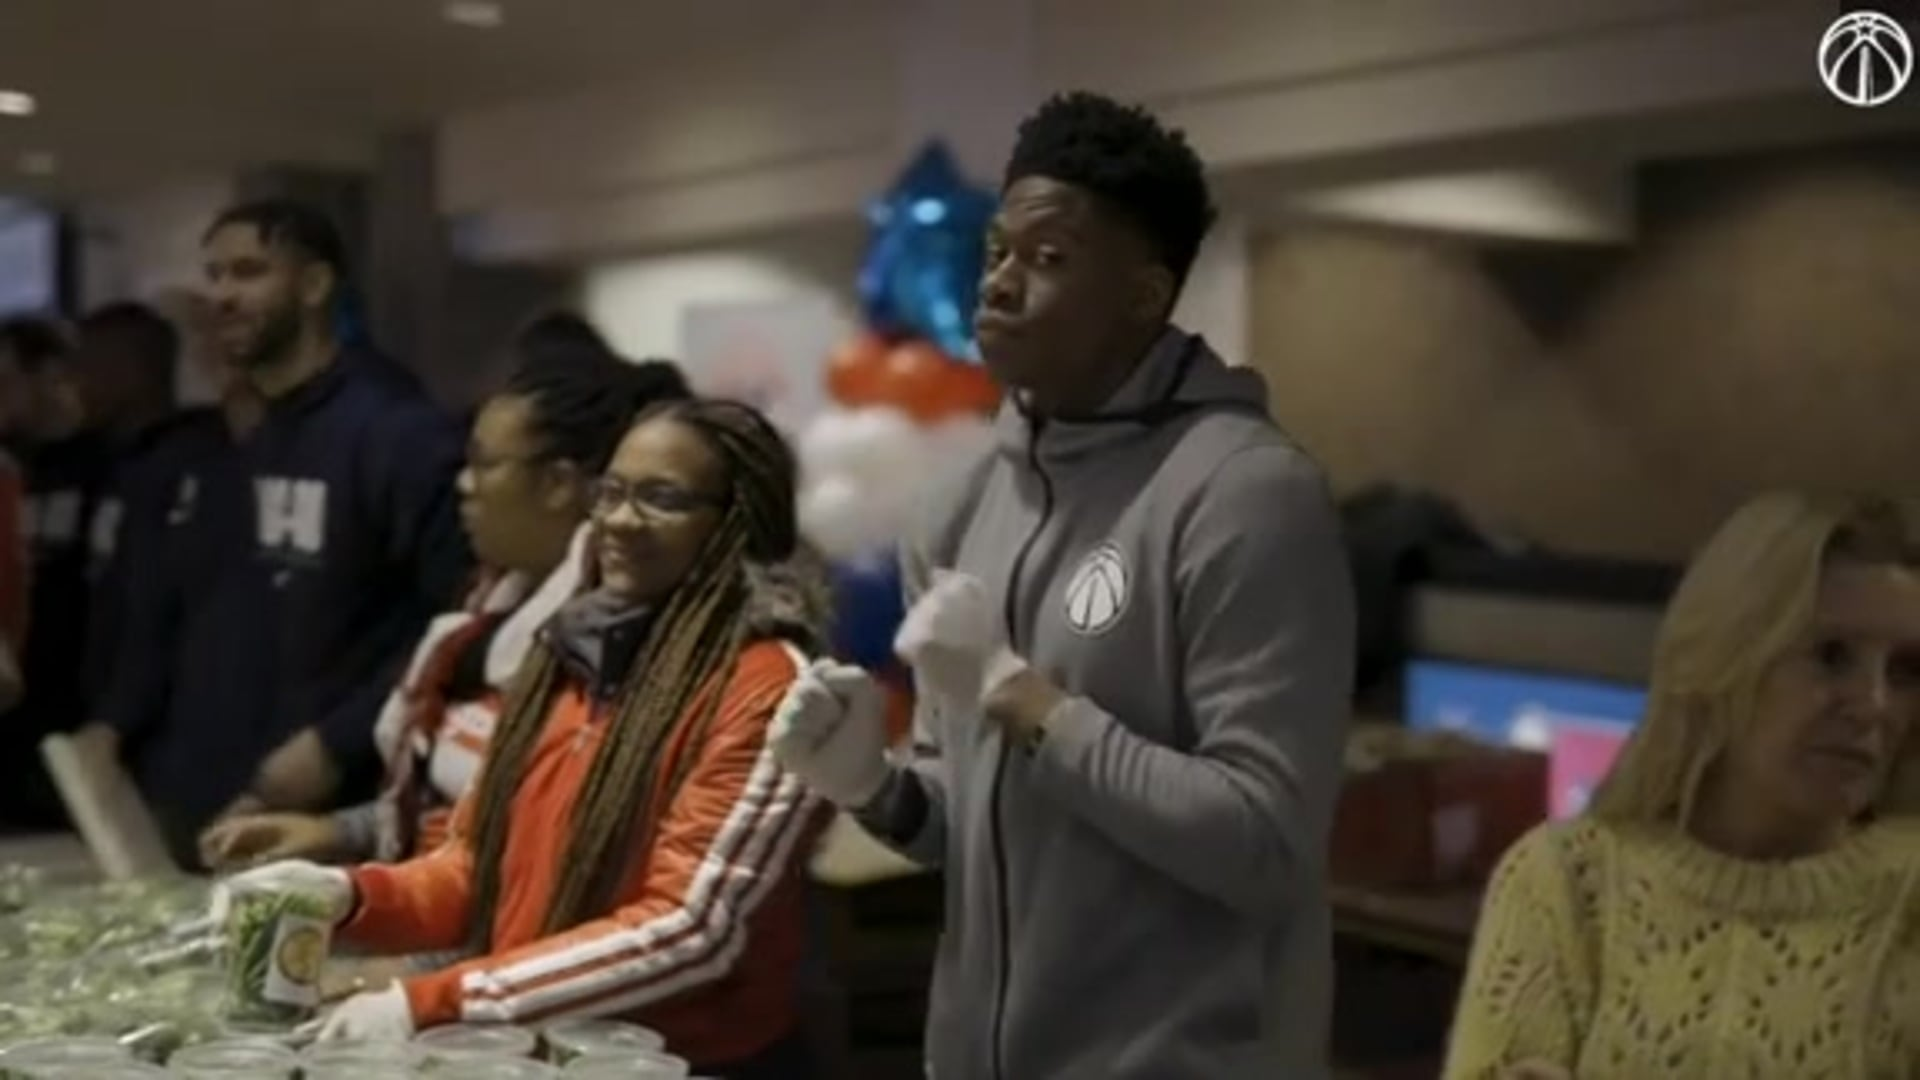 Admiral Schofield Thanksgiving Day Assist - 11/28/19